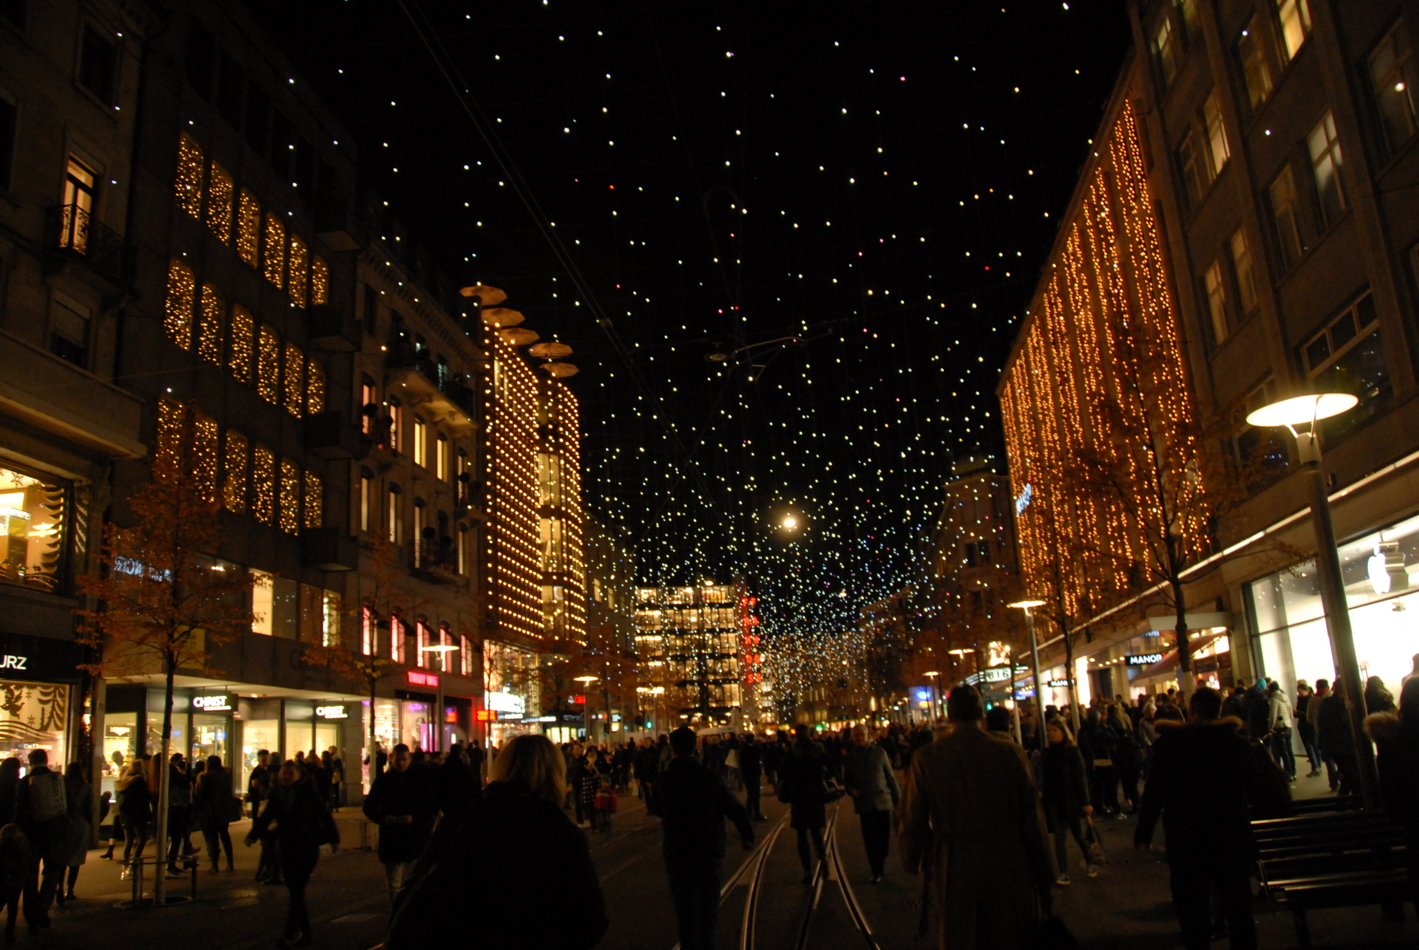 Weihnachtsbeleuchtung - Bahnhofstrasse Zürich: Lucy in the Sky with ...